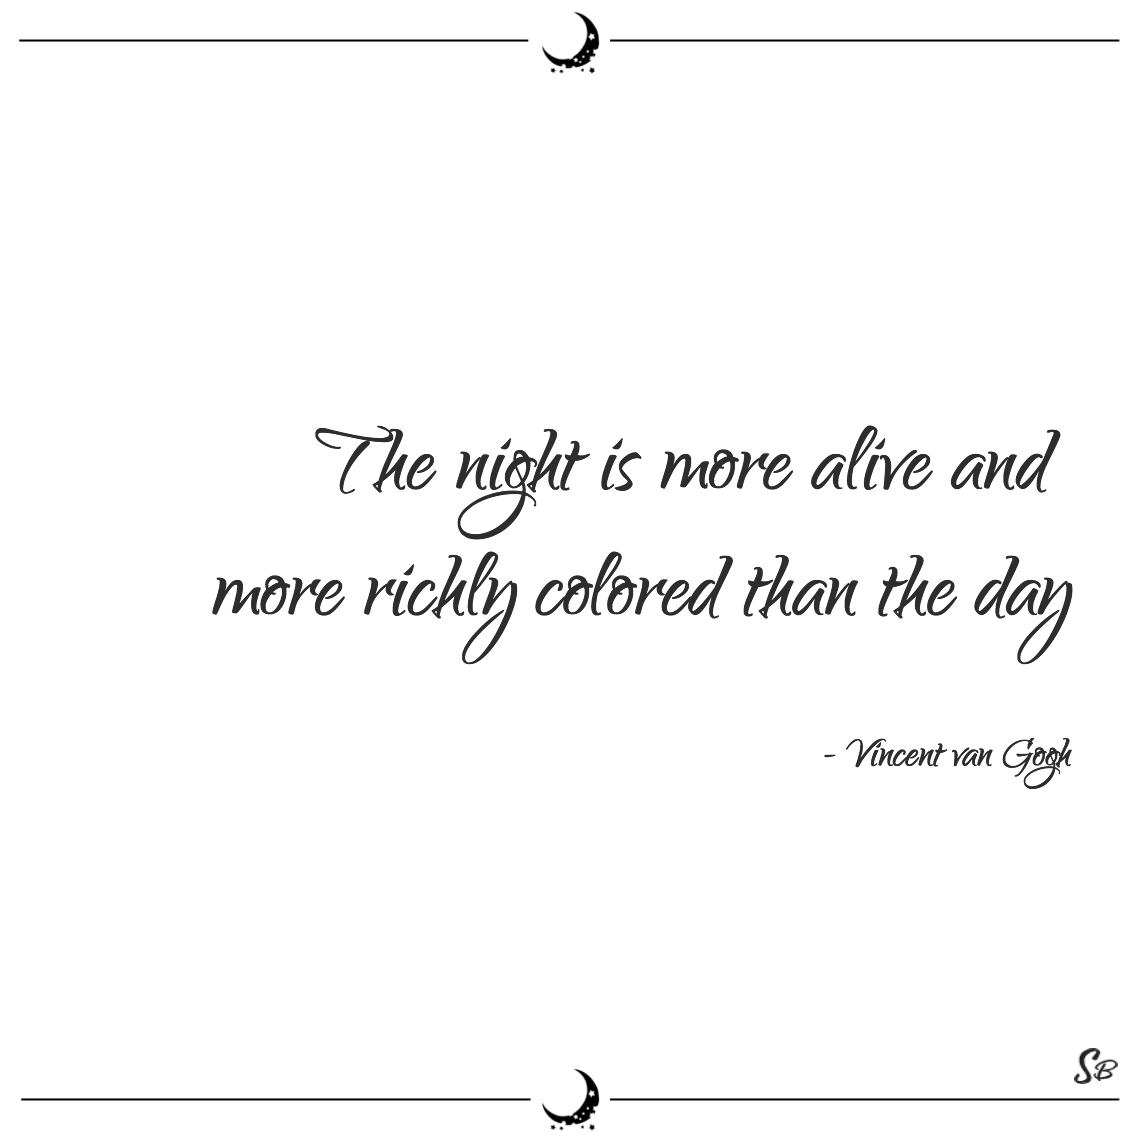 The night is more alive and more richly colored than the day vincent van gogh